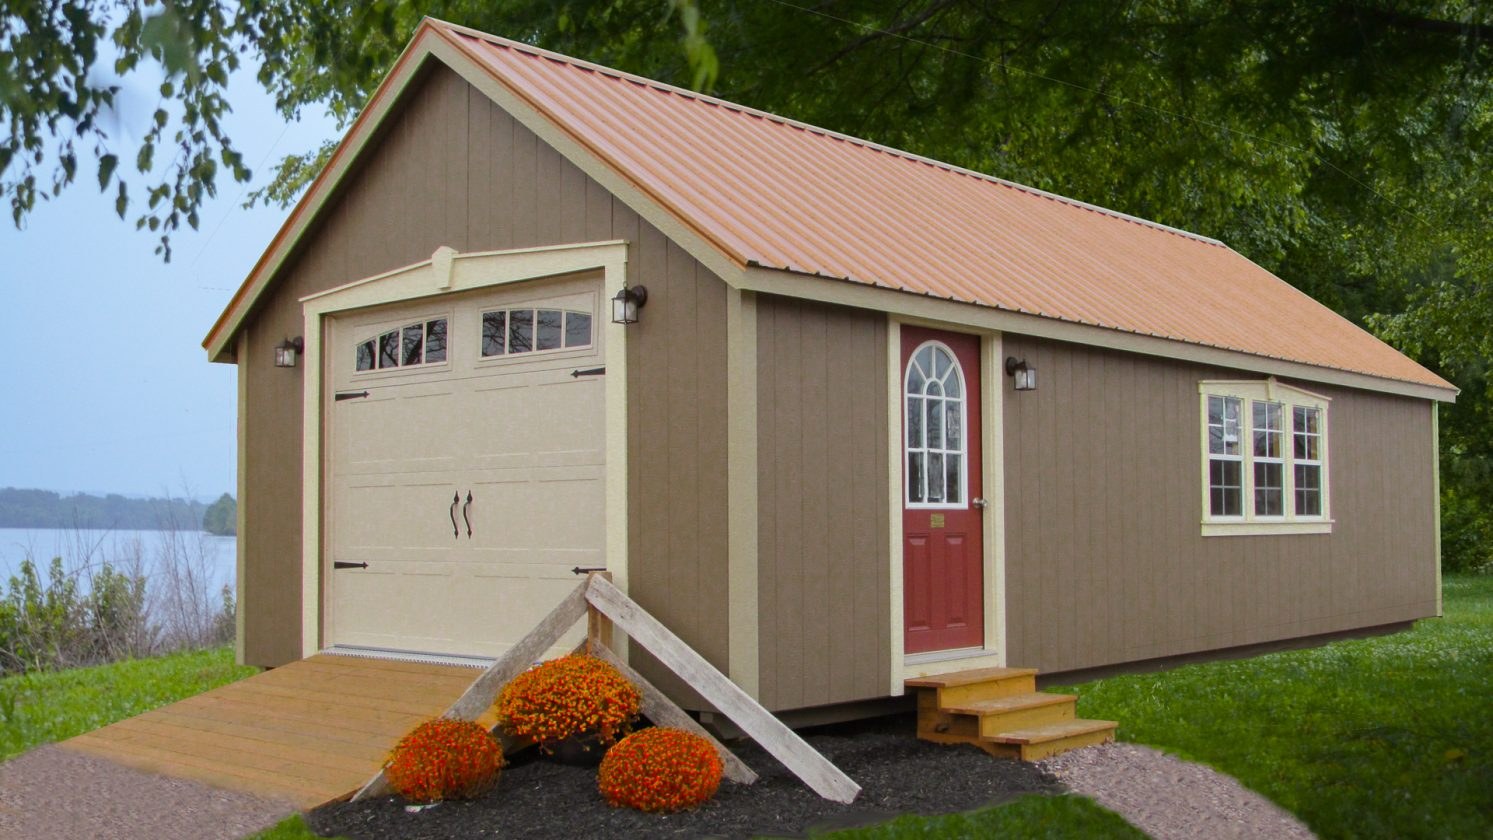 5 star buildings best prefab garages for sale in missouri